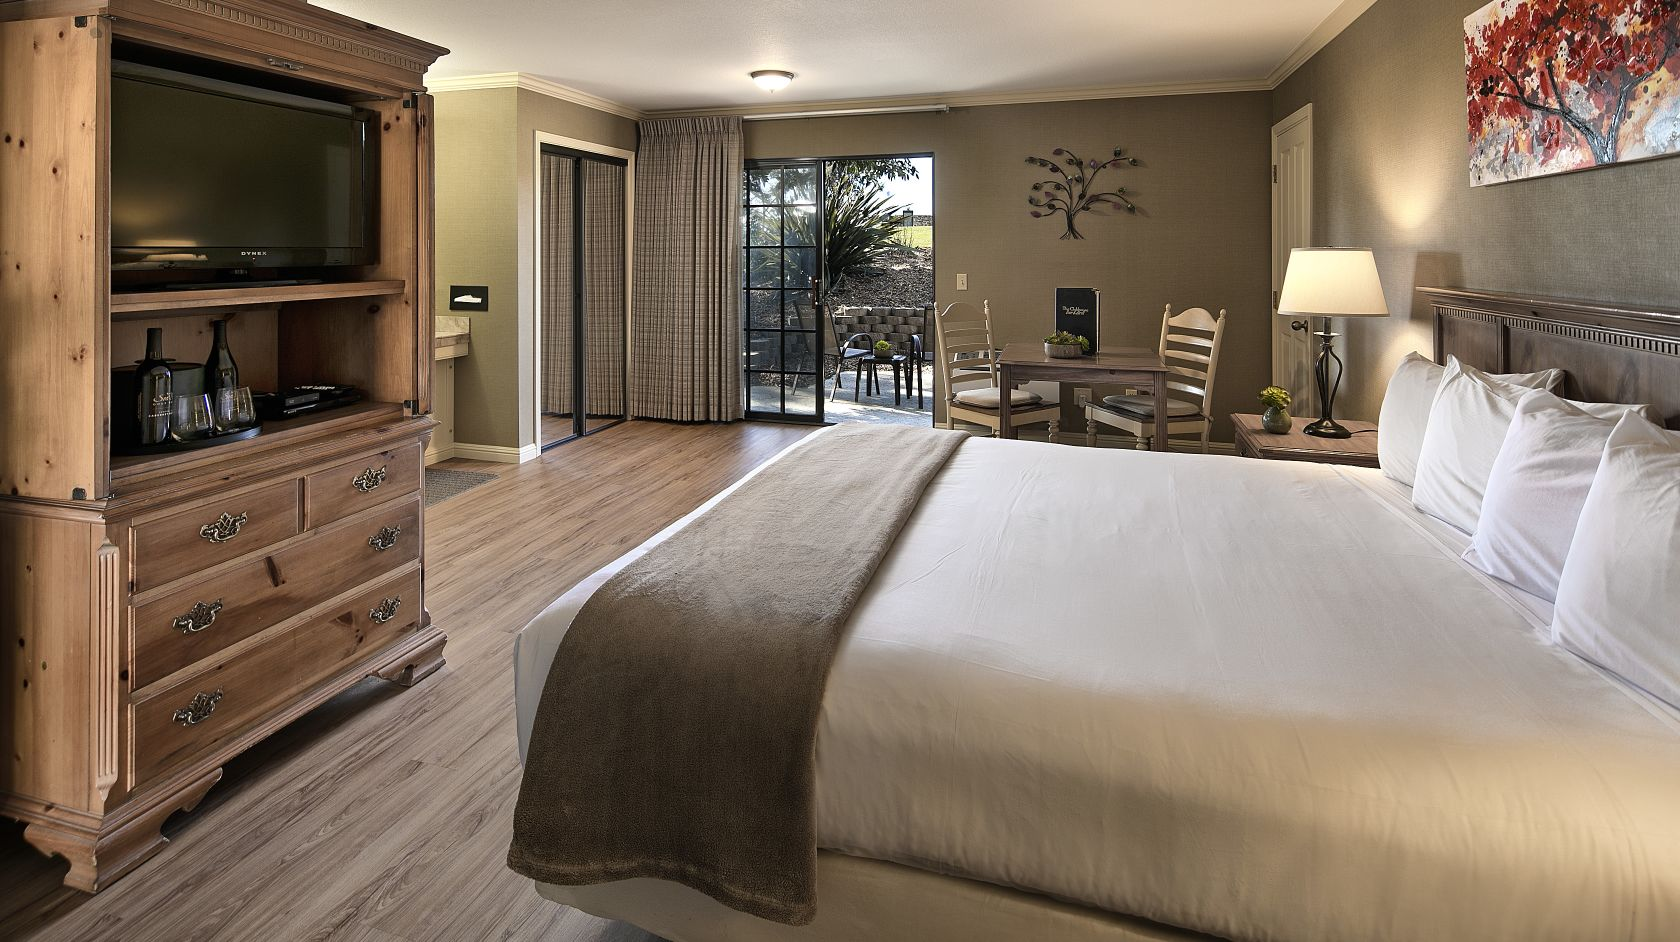 spacious, clean King room at Sea Pines Resort in Los Osos, California